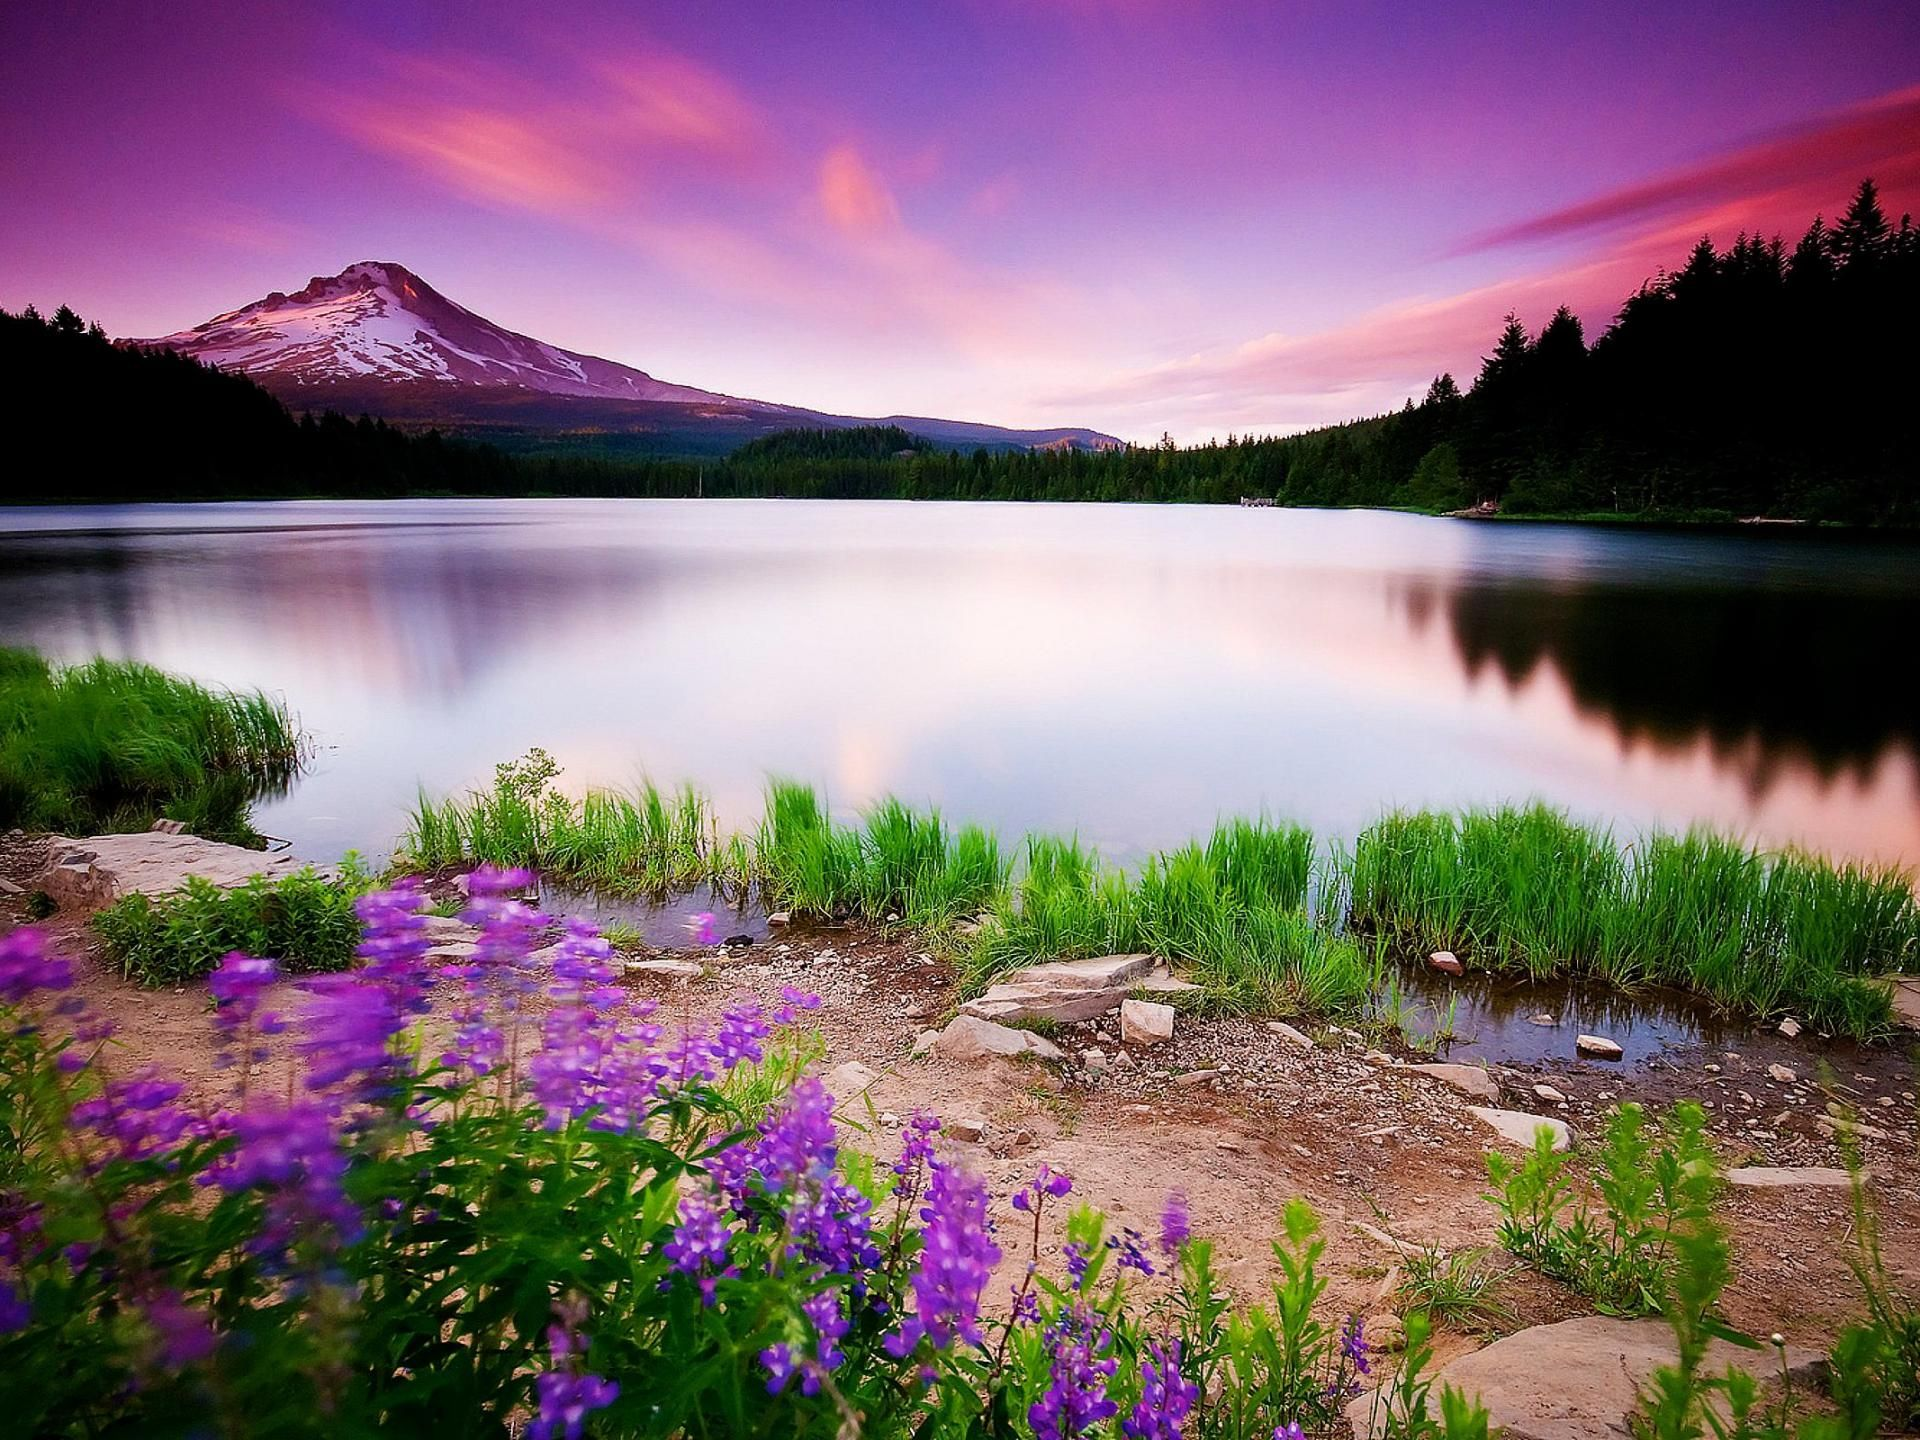 Lake view wallpapers Beautiful wallpaper collections